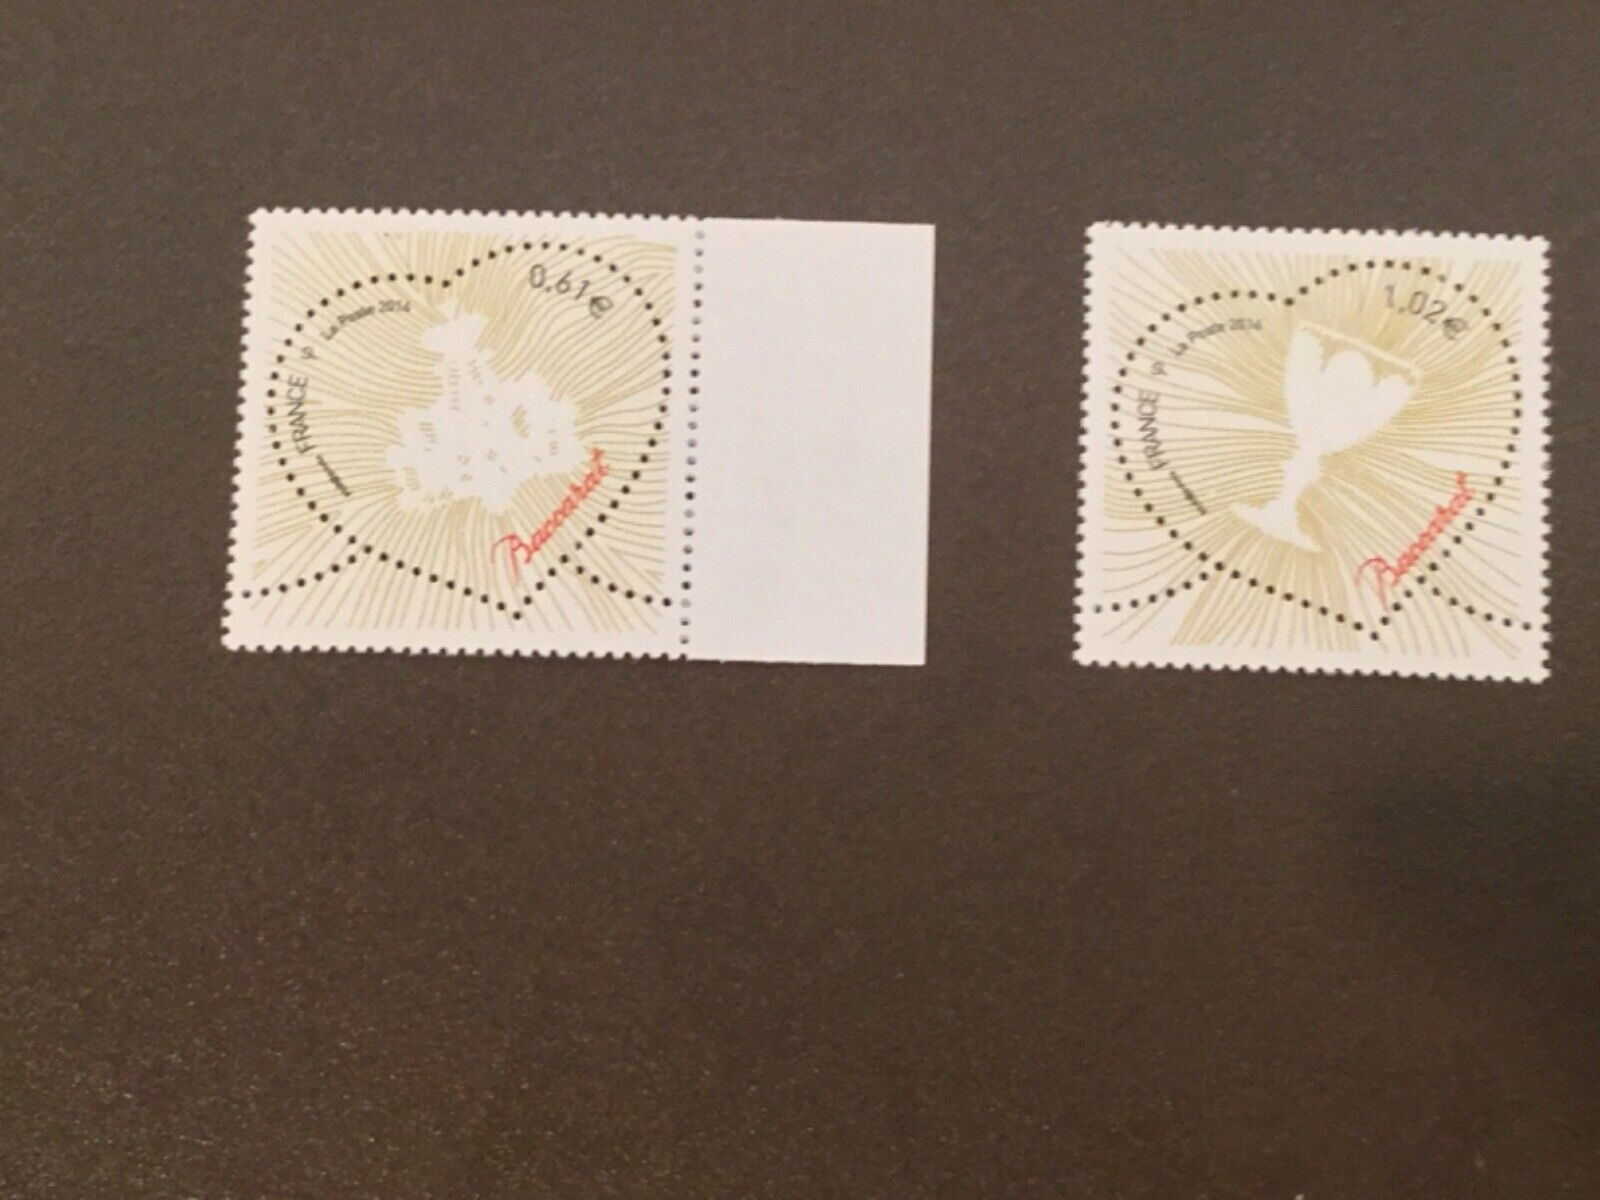 FRANCE BACCARAT PERFORATED 2014 MNH Scott 4551-52 PERFORATED STAMPS FV 1.63  - $1.99